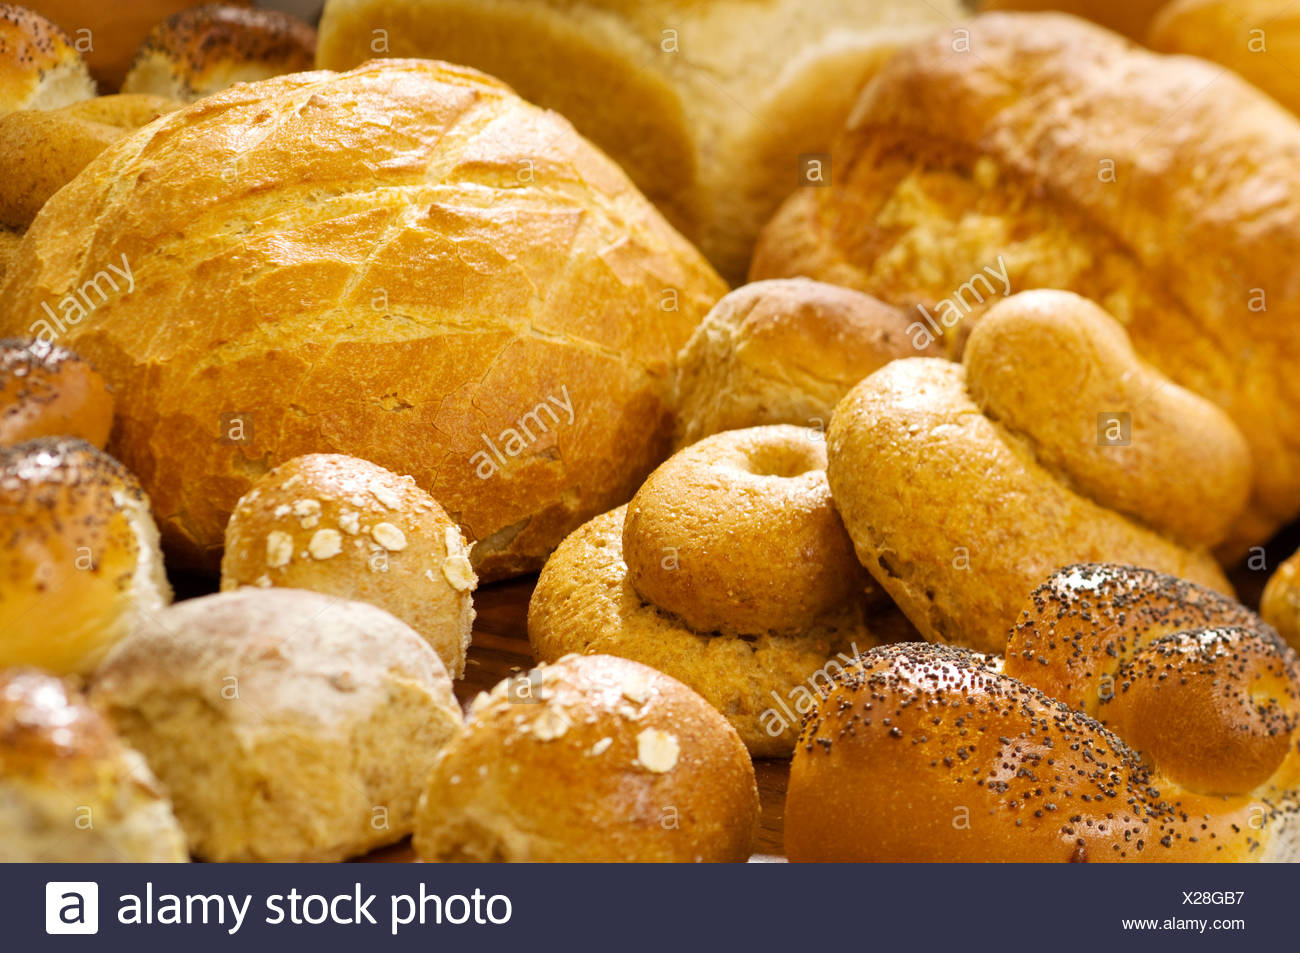 Loaves of bread - Stock Image